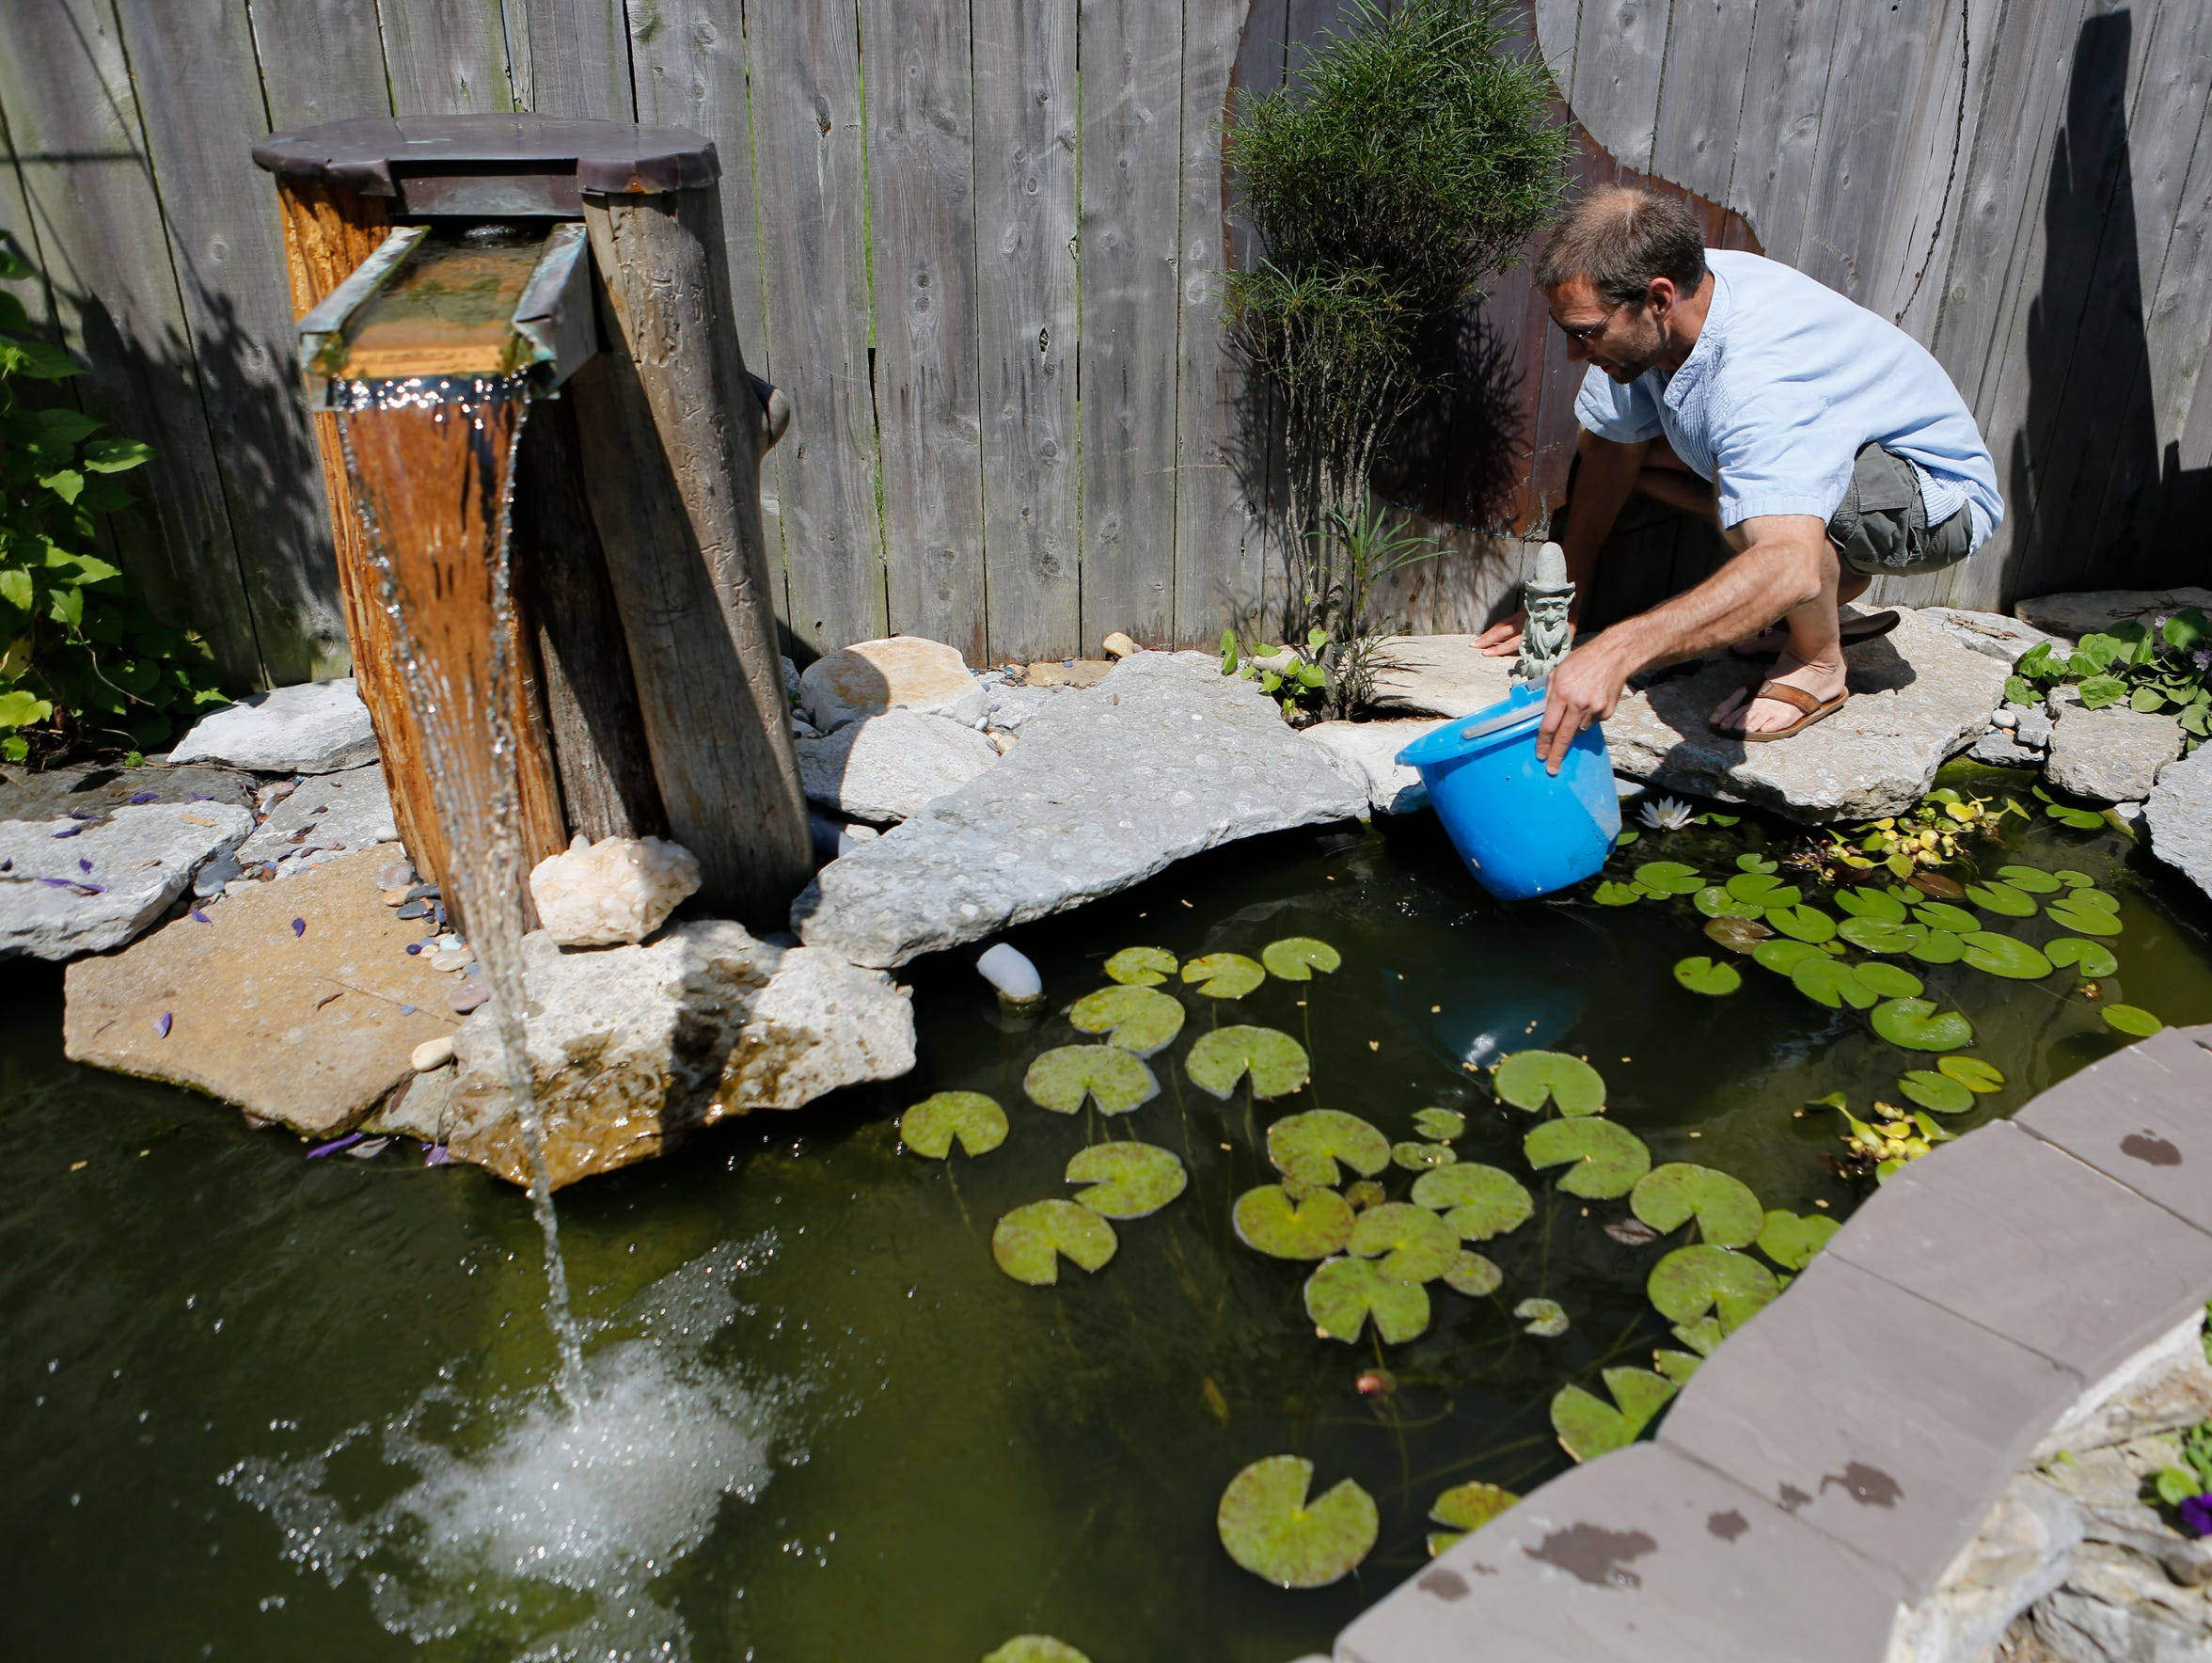 Joe scoops up pond water to give to other plants in